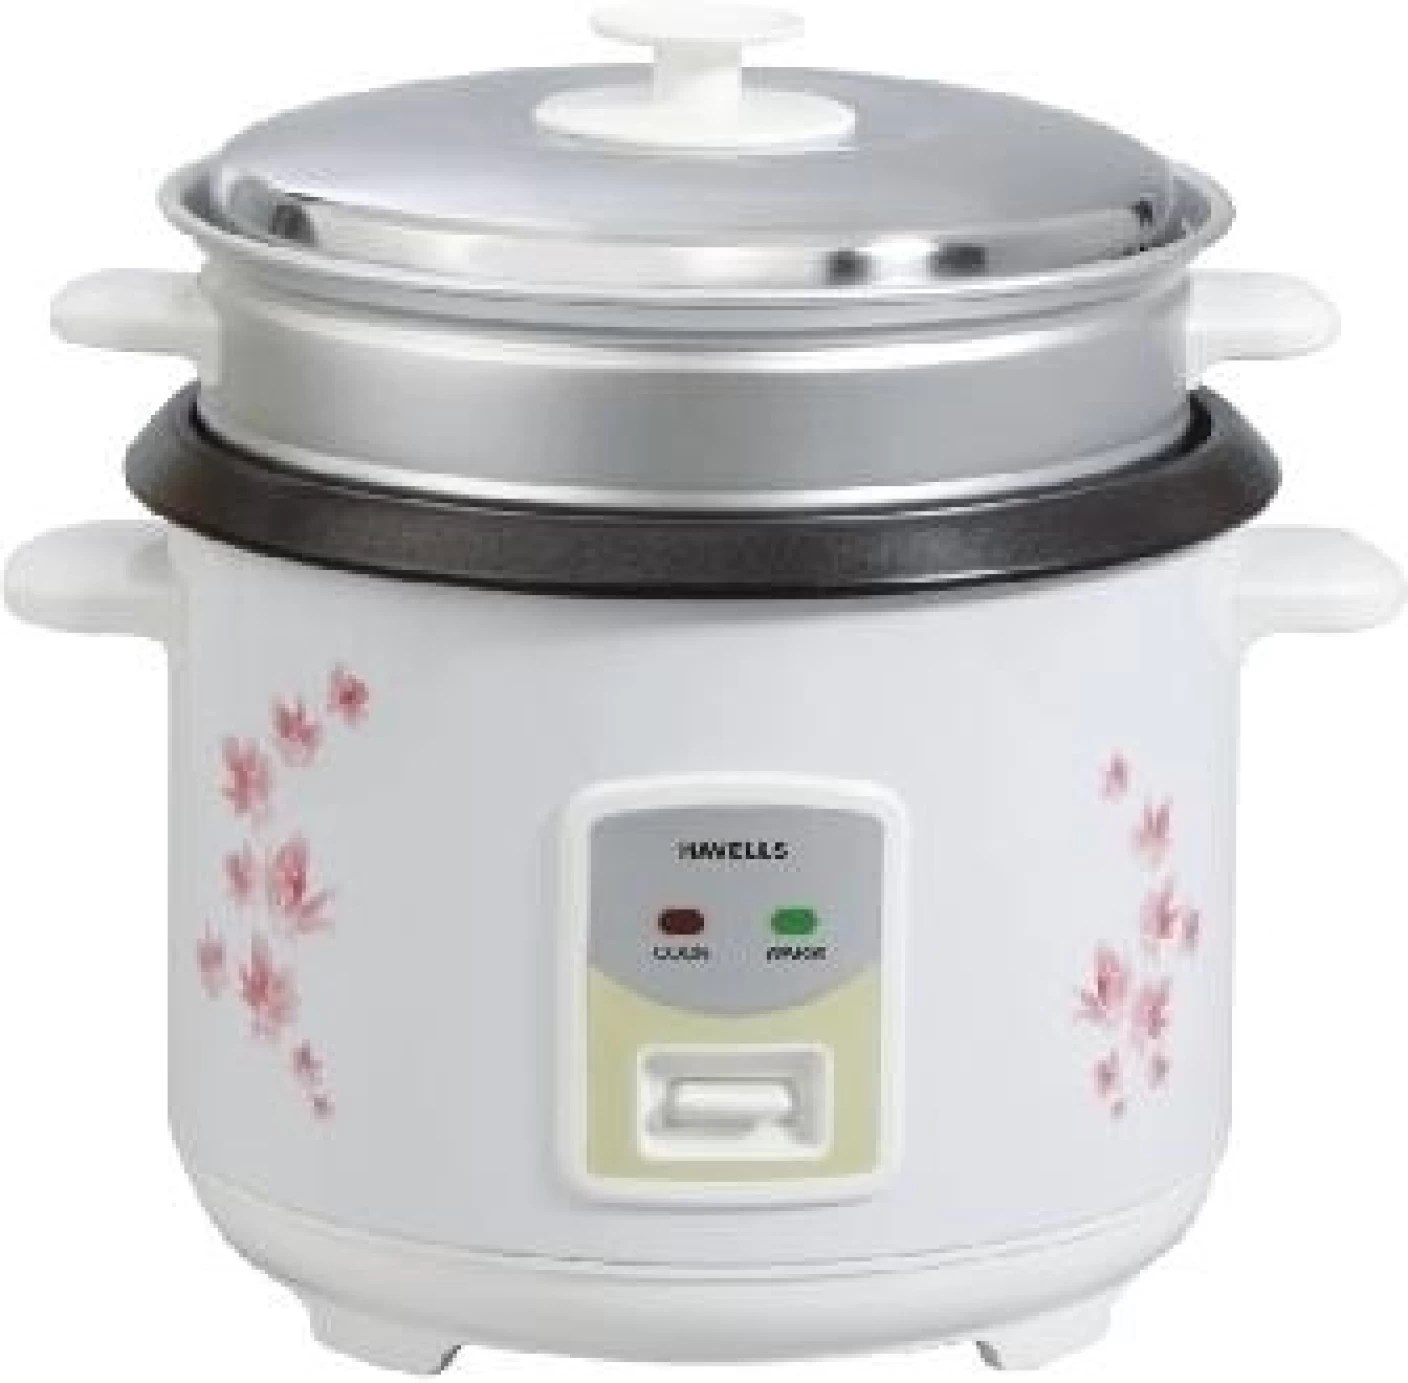 Havells MAX COOK 18 OL Electric Rice Cooker With Steaming